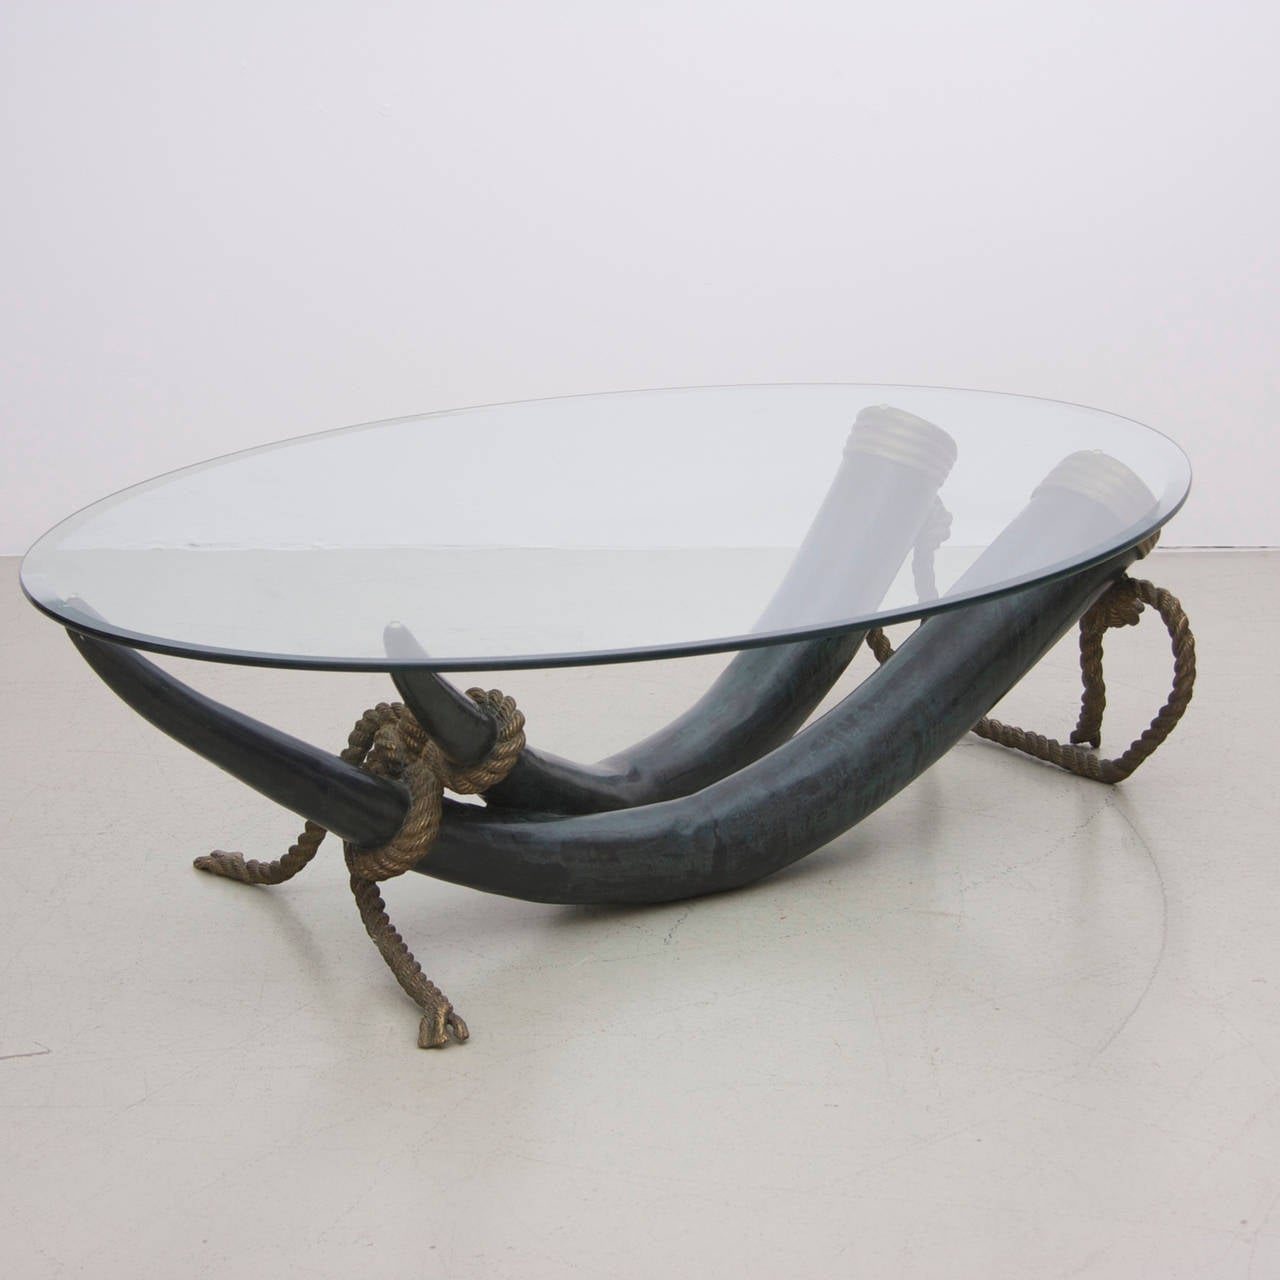 Huge Bronze And Brass Elephant Tusk Coffee Table By Italo Valenti At 1stdibs